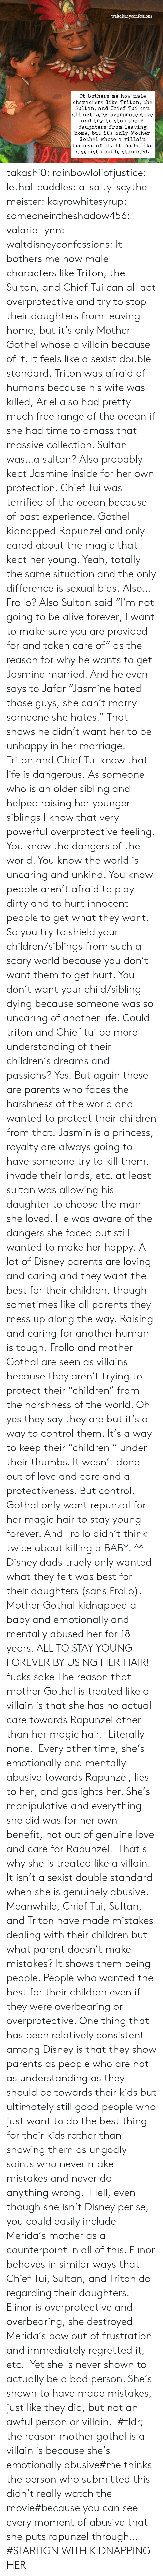 "sexist: waltdisneyconfessions  It bothers me how male  characters like Triton, the  Sultan, and Chief Tui can  all act very overprotective  and try to stop their  daughters from leaving  home, but it's only Mother  Gothel whose a villain  because of it. It feels like  a sexist double standard. takashi0: rainbowloliofjustice:  lethal-cuddles:  a-salty-scythe-meister:  kayrowhitesyrup:   someoneintheshadow456:   valarie-lynn:  waltdisneyconfessions:  It bothers me how male characters like Triton, the Sultan, and Chief Tui can all act overprotective and try to stop their daughters from leaving home, but it's only Mother Gothel whose a villain because of it. It feels like a sexist double standard.  Triton was afraid of humans because his wife was killed, Ariel also had pretty much free range of the ocean if she had time to amass that massive collection. Sultan was…a sultan? Also probably kept Jasmine inside for her own protection. Chief Tui was terrified of the ocean because of past experience. Gothel kidnapped Rapunzel and only cared about the magic that kept her young. Yeah, totally the same situation and the only difference is sexual bias. Also…Frollo?  Also Sultan said ""I'm not going to be alive forever, I want to make sure you are provided for and taken care of"" as the reason for why he wants to get Jasmine married. And he even says to Jafar ""Jasmine hated those guys, she can't marry someone she hates."" That shows he didn't want her to be unhappy in her marriage.    Triton and Chief Tui know that life is dangerous. As someone who is an older sibling and helped raising her younger siblings I know that very powerful overprotective feeling. You know the dangers of the world. You know the world is uncaring and unkind. You know people aren't afraid to play dirty and to hurt innocent people to get what they want. So you try to shield your children/siblings from such a scary world because you don't want them to get hurt. You don't want your child/sibling dying because someone was so uncaring of another life. Could triton and Chief tui be more understanding of their children's dreams and passions? Yes! But again these are parents who faces the harshness of the world and wanted to protect their children from that. Jasmin is a princess, royalty are always going to have someone try to kill them, invade their lands, etc. at least sultan was allowing his daughter to choose the man she loved. He was aware of the dangers she faced but still wanted to make her happy. A lot of Disney parents are loving and caring and they want the best for their children, though sometimes like all parents they mess up along the way. Raising and caring for another human is tough. Frollo and mother Gothal are seen as villains because they aren't trying to protect their ""children"" from the harshness of the world. Oh yes they say they are but it's a way to control them. It's a way to keep their ""children "" under their thumbs. It wasn't done out of love and care and a protectiveness. But control. Gothal only want repunzal for her magic hair to stay young forever. And Frollo didn't think twice about killing a BABY!    ^^ Disney dads truely only wanted what they felt was best for their daughters (sans Frollo). Mother Gothal kidnapped a baby and emotionally and mentally abused her for 18 years. ALL TO STAY YOUNG FOREVER BY USING HER HAIR!  fucks sake  The reason that mother Gothel is treated like a villain is that she has no actual care towards Rapunzel other than her magic hair.  Literally none.  Every other time, she's emotionally and mentally abusive towards Rapunzel, lies to her, and gaslights her. She's manipulative and everything she did was for her own benefit, not out of genuine love and care for Rapunzel.  That's why she is treated like a villain. It isn't a sexist double standard when she is genuinely abusive.  Meanwhile, Chief Tui, Sultan, and Triton have made mistakes dealing with their children but what parent doesn't make mistakes? It shows them being people. People who wanted the best for their children even if they were overbearing or overprotective. One thing that has been relatively consistent among Disney is that they show parents as people who are not as understanding as they should be towards their kids but ultimately still good people who just want to do the best thing for their kids rather than showing them as ungodly saints who never make mistakes and never do anything wrong.  Hell, even though she isn't Disney per se, you could easily include Merida's mother as a counterpoint in all of this. Elinor behaves in similar ways that Chief Tui, Sultan, and Triton do regarding their daughters. Elinor is overprotective and overbearing, she destroyed Merida's bow out of frustration and immediately regretted it, etc.  Yet she is never shown to actually be a bad person. She's shown to have made mistakes, just like they did, but not an awful person or villain.   #tldr; the reason mother gothel is a villain is because she's emotionally abusive#me thinks the person who submitted this didn't really watch the movie#because you can see every moment of abusive that she puts rapunzel through…#STARTIGN WITH KIDNAPPING HER"